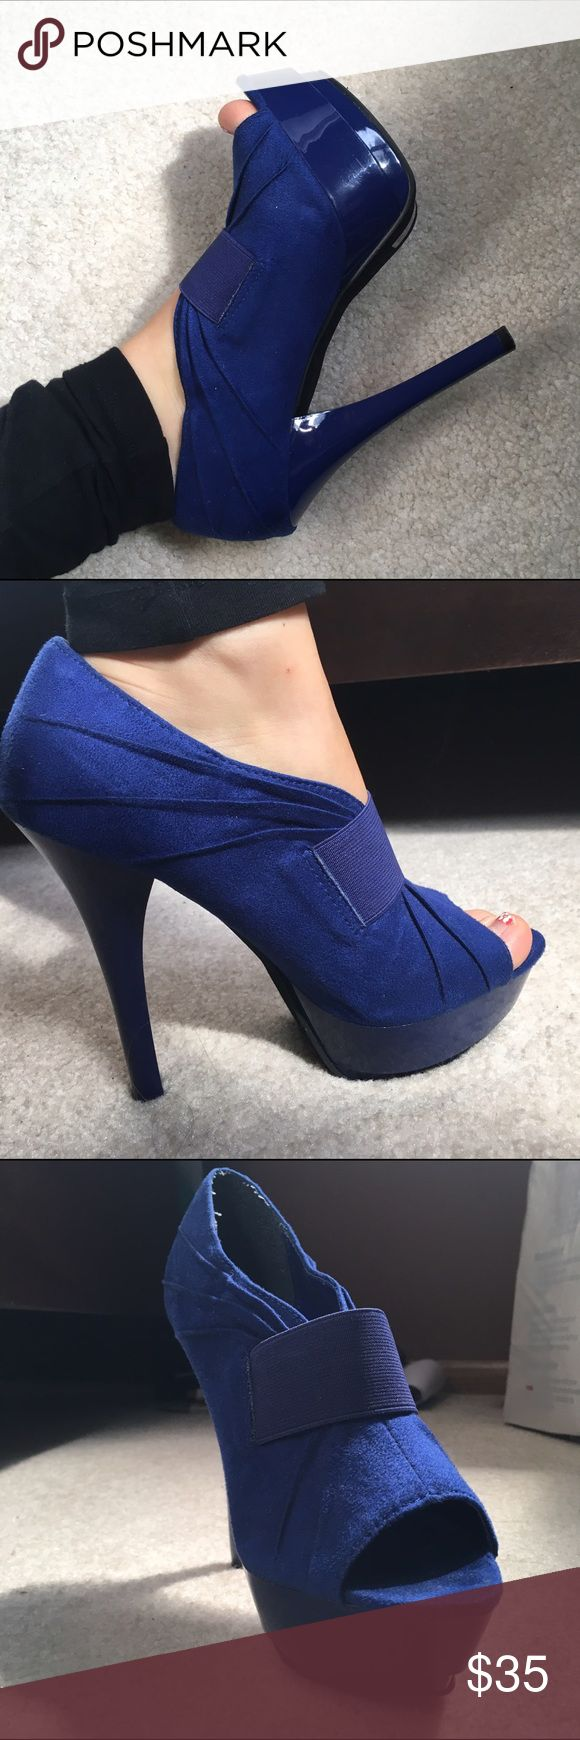 Michael Antonio royal Blue High Heels (stilettos) Royal blue high heeled platforms . Size 6. Beautiful color. Designer: Michael Antonio. Michael Antonio Shoes Platforms